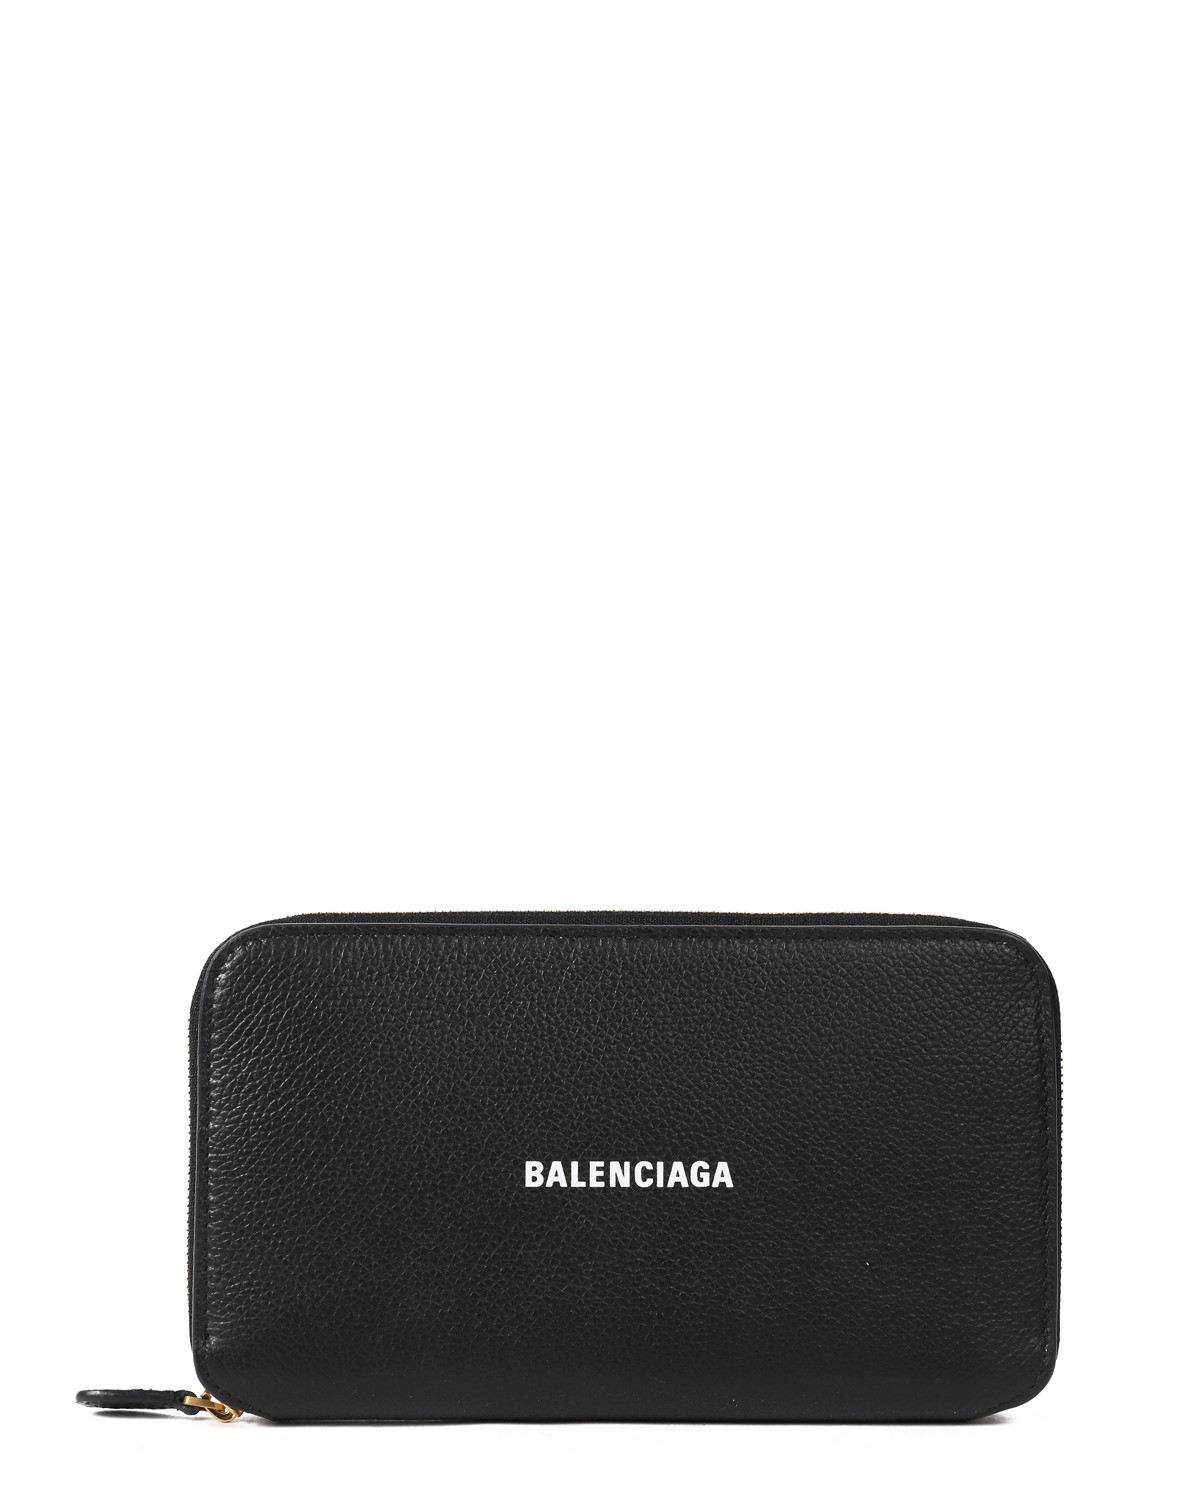 Balenciaga black Cash wallet